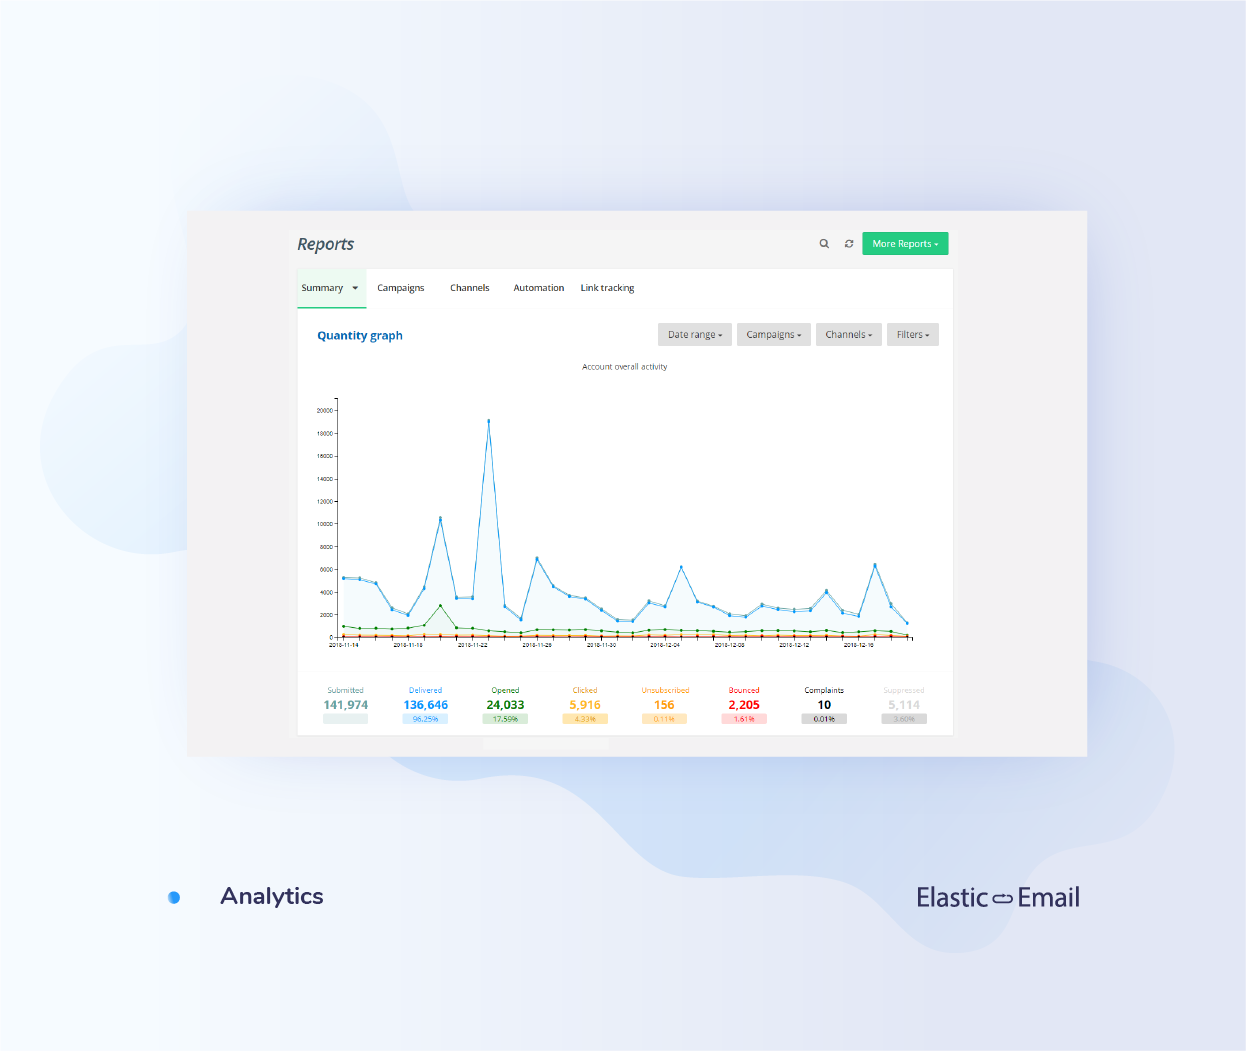 Elastic Email Demo - Build effective campaigns with real-time reports